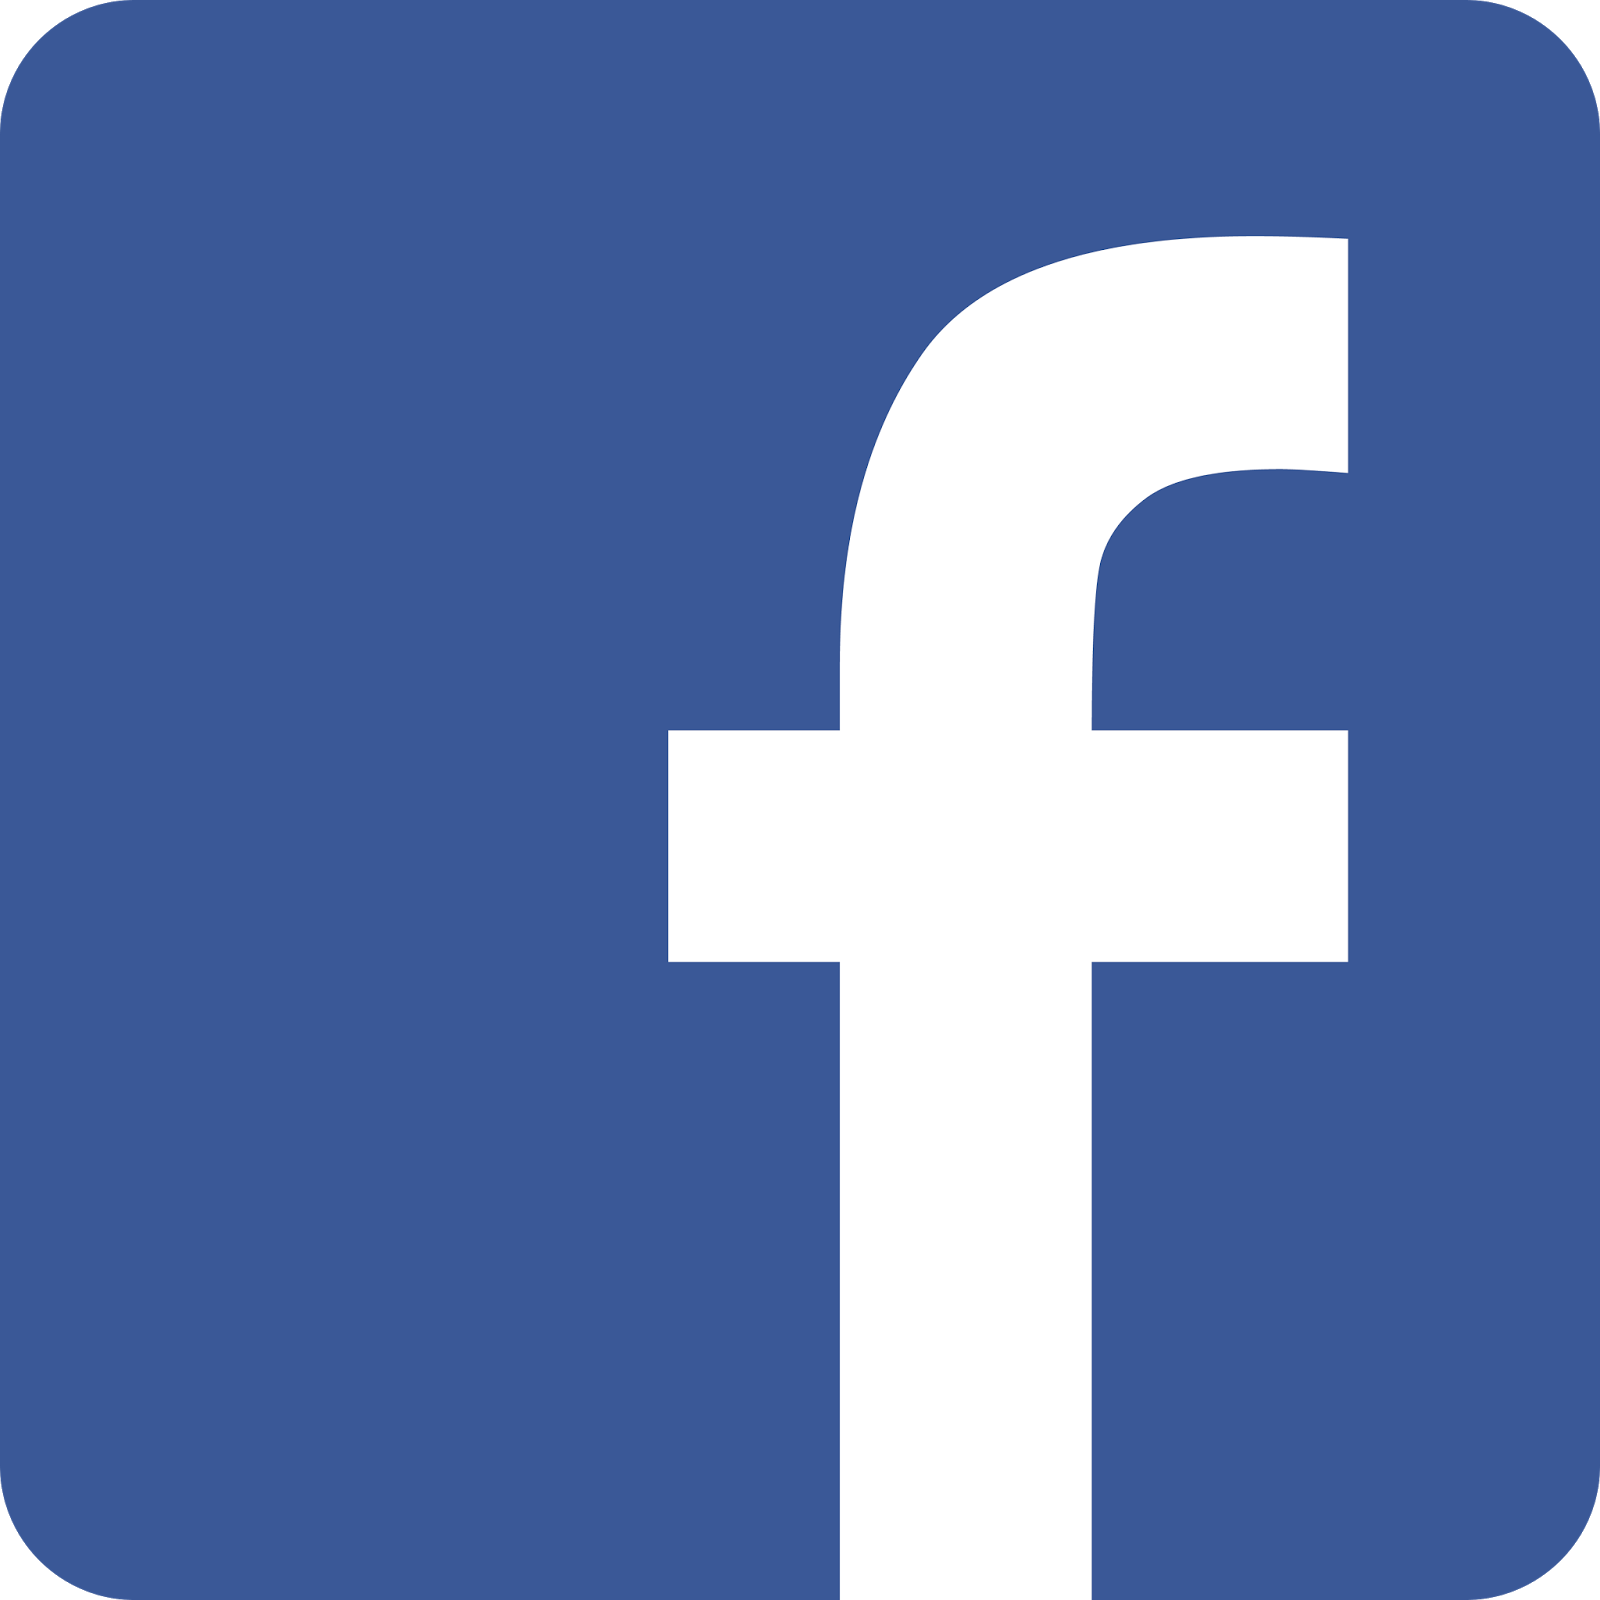 Facebook Transparent Logo Png 1600x1600.